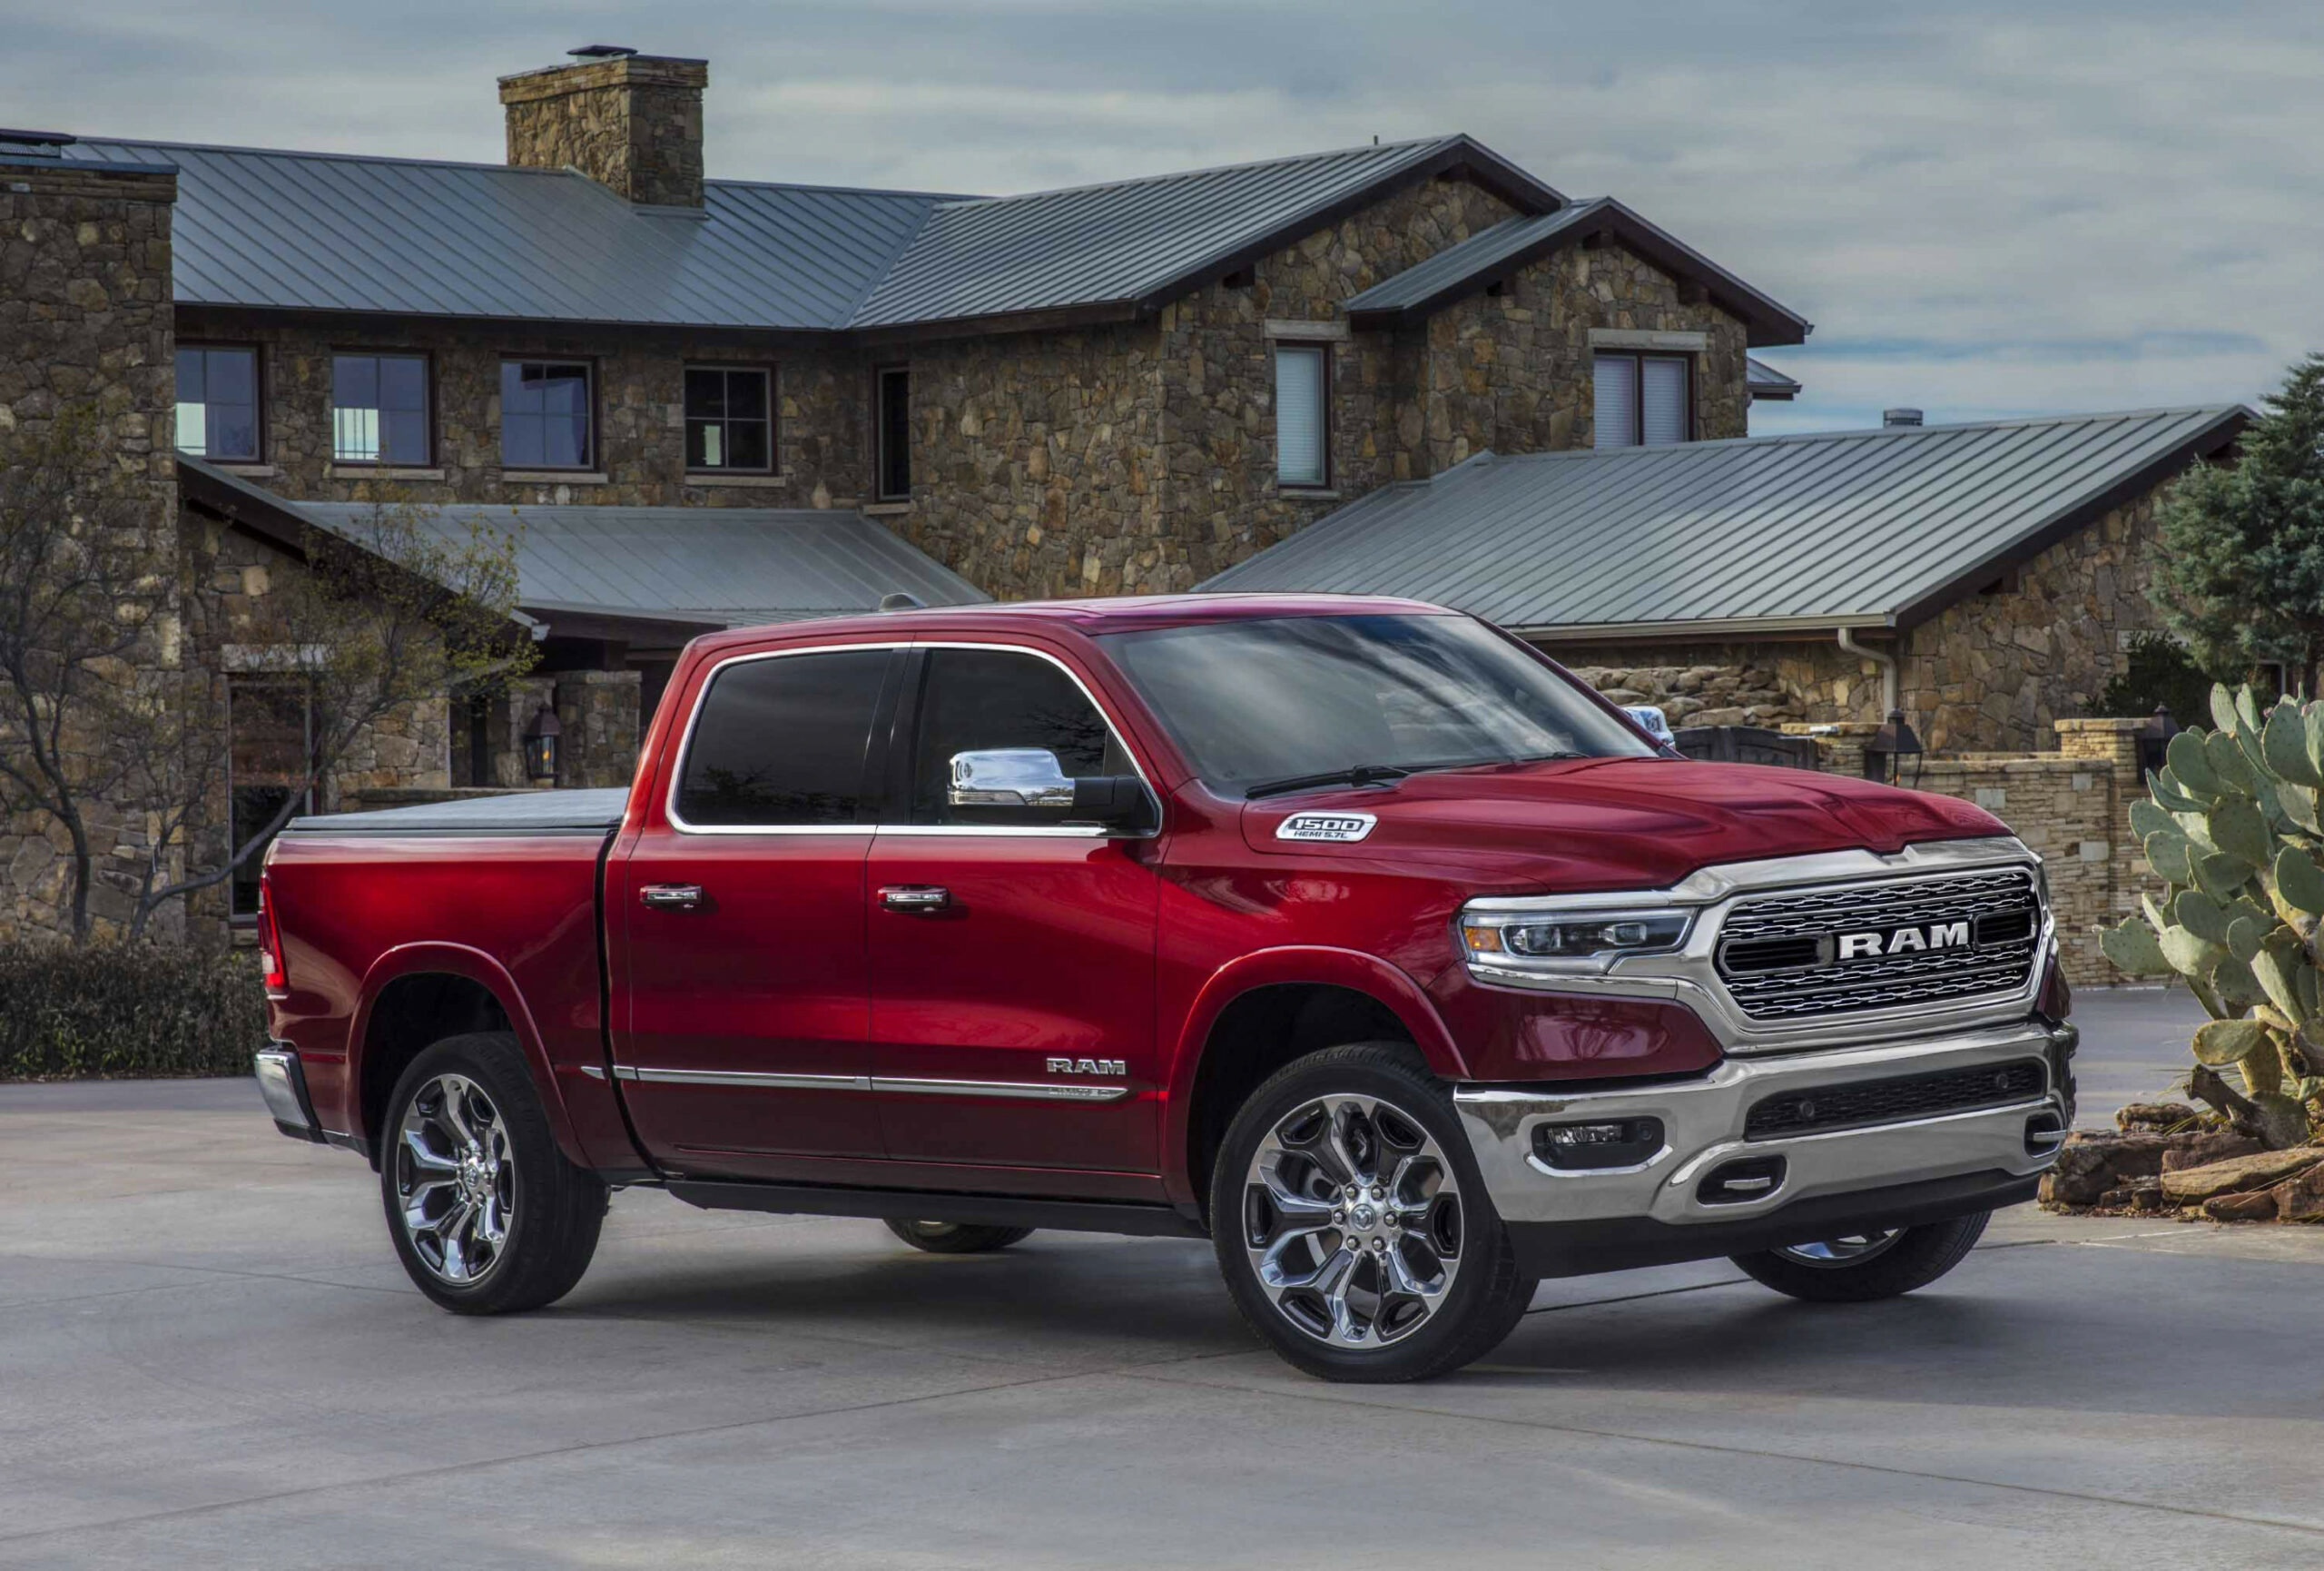 New Concept 2022 Dodge Ram Truck